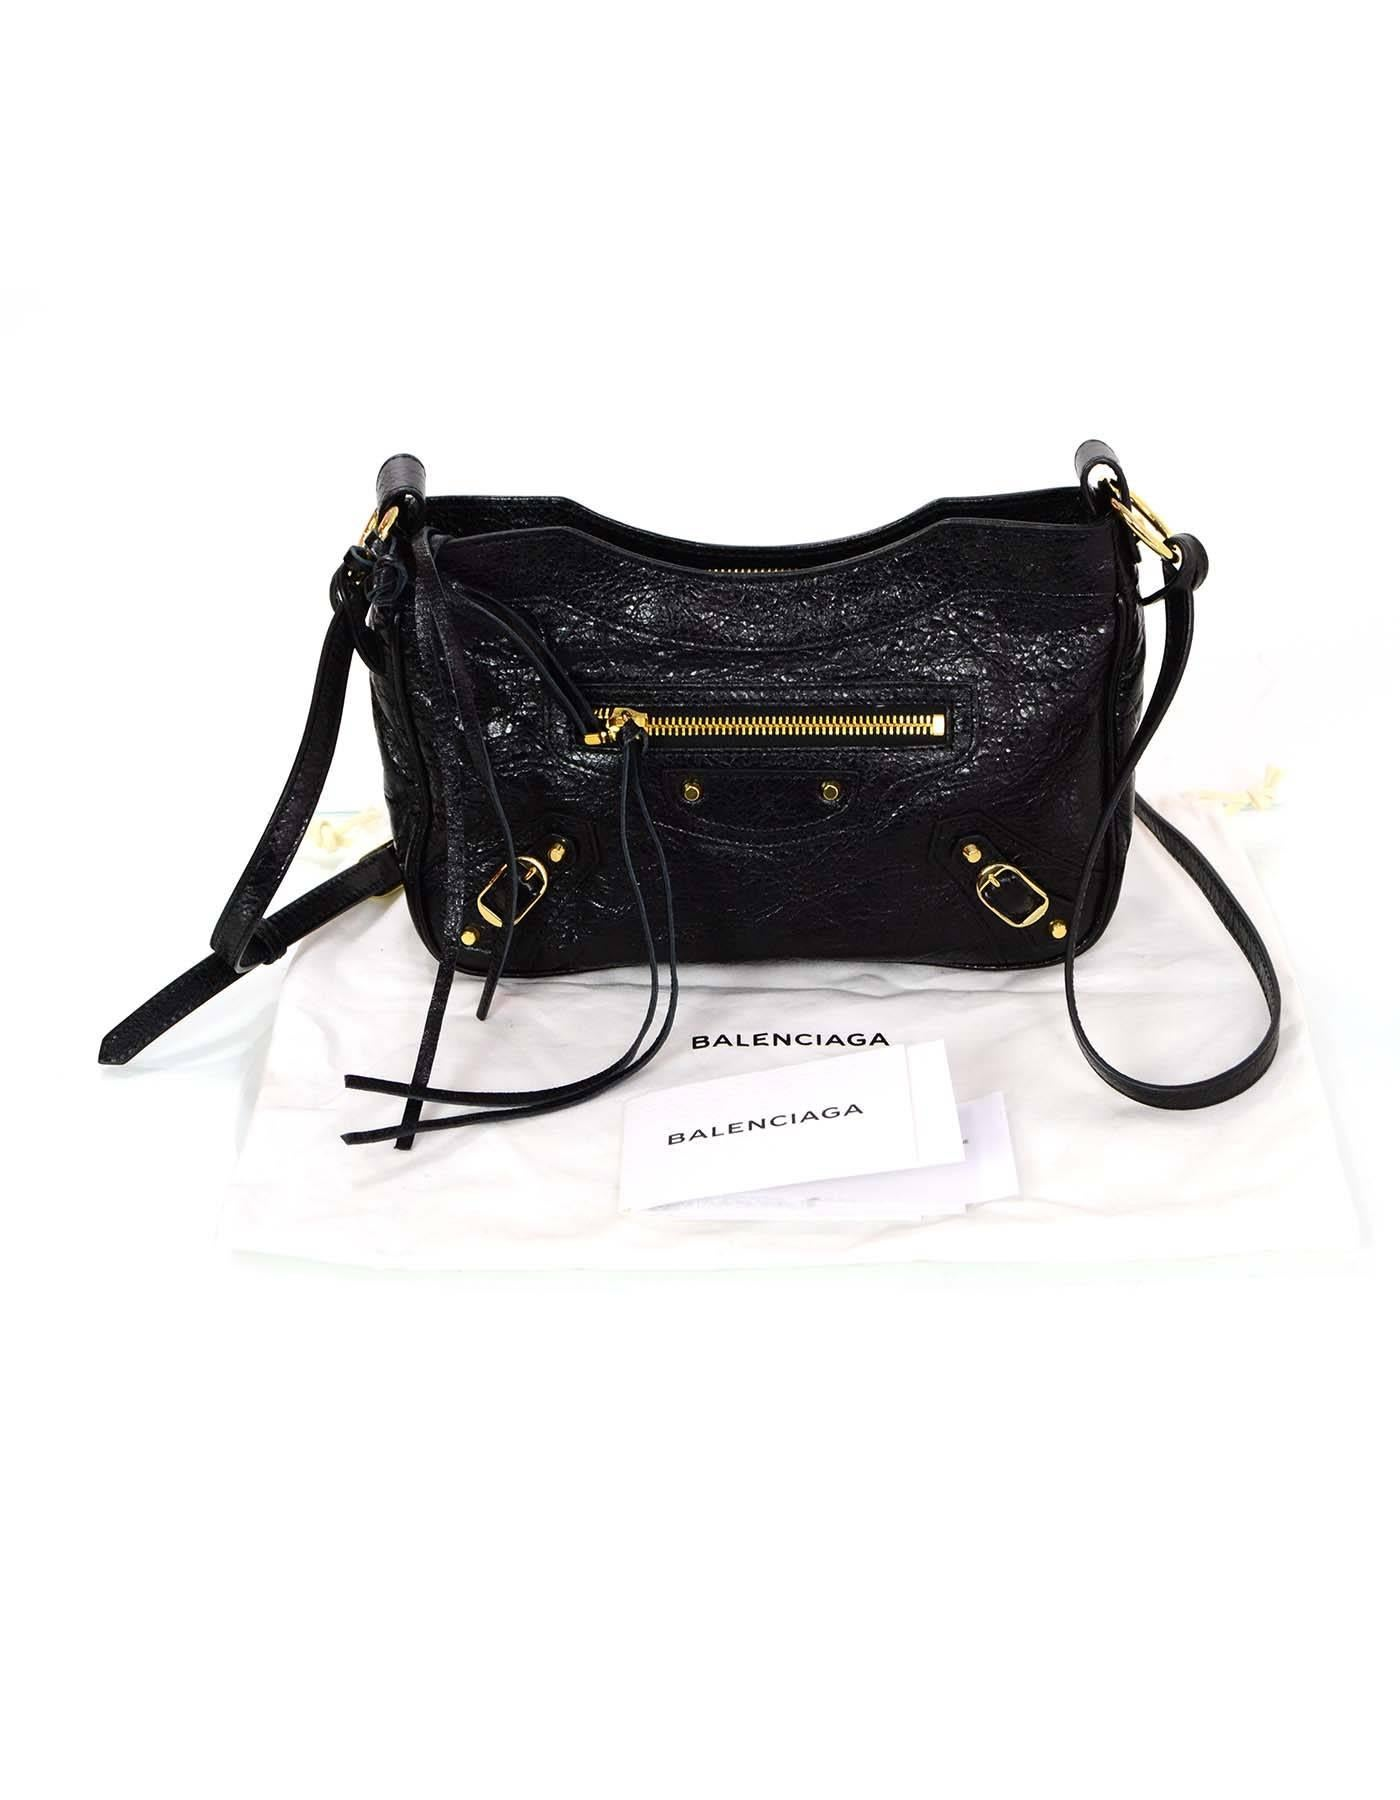 82fb0606ee8 Balenciaga Black Leather Classic Hip Crossbody Bag For Sale at 1stdibs